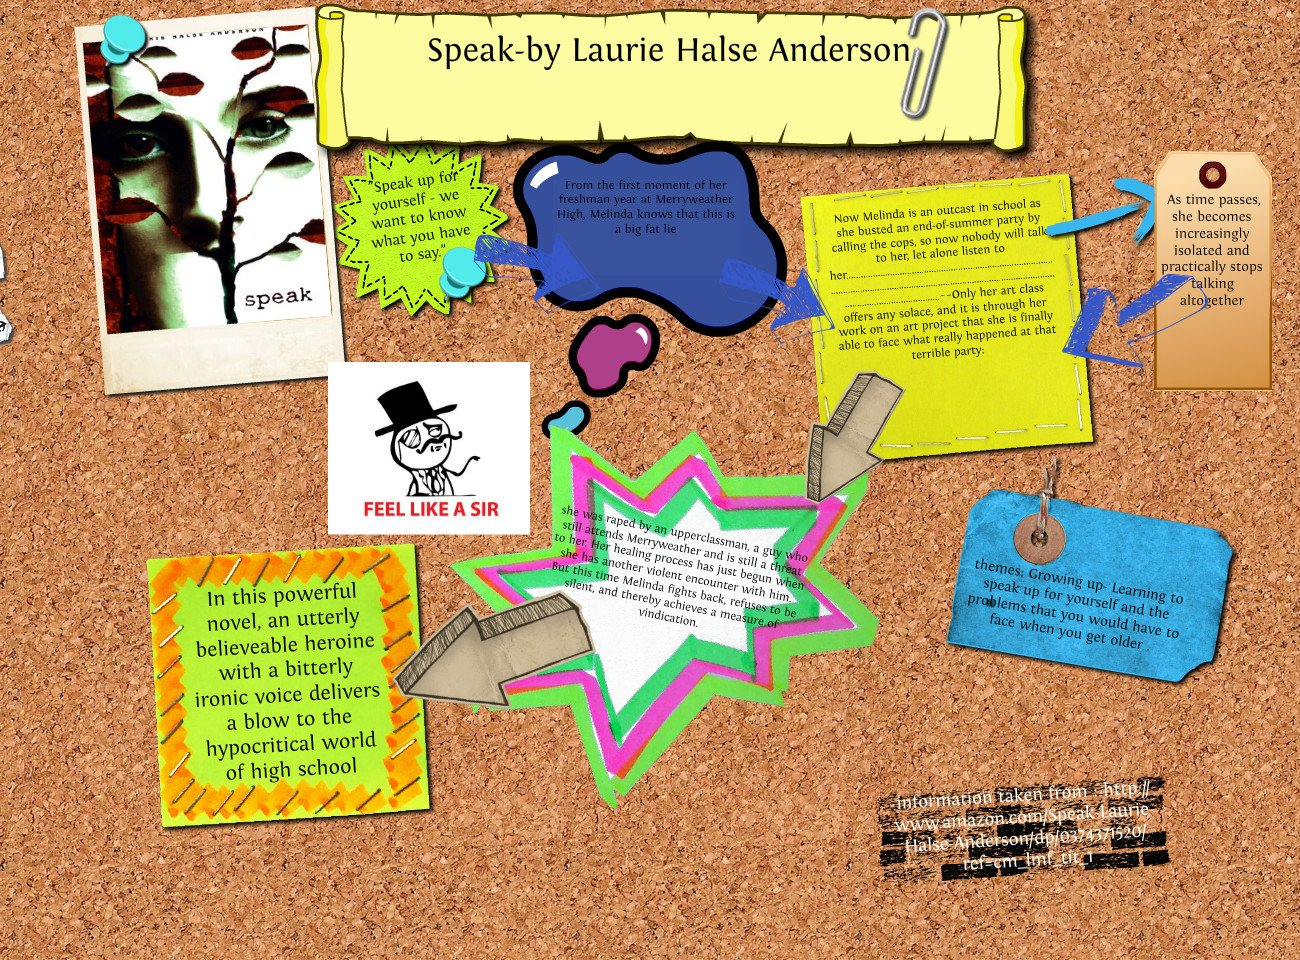 TeachingBooks.net | Laurie Halse Anderson